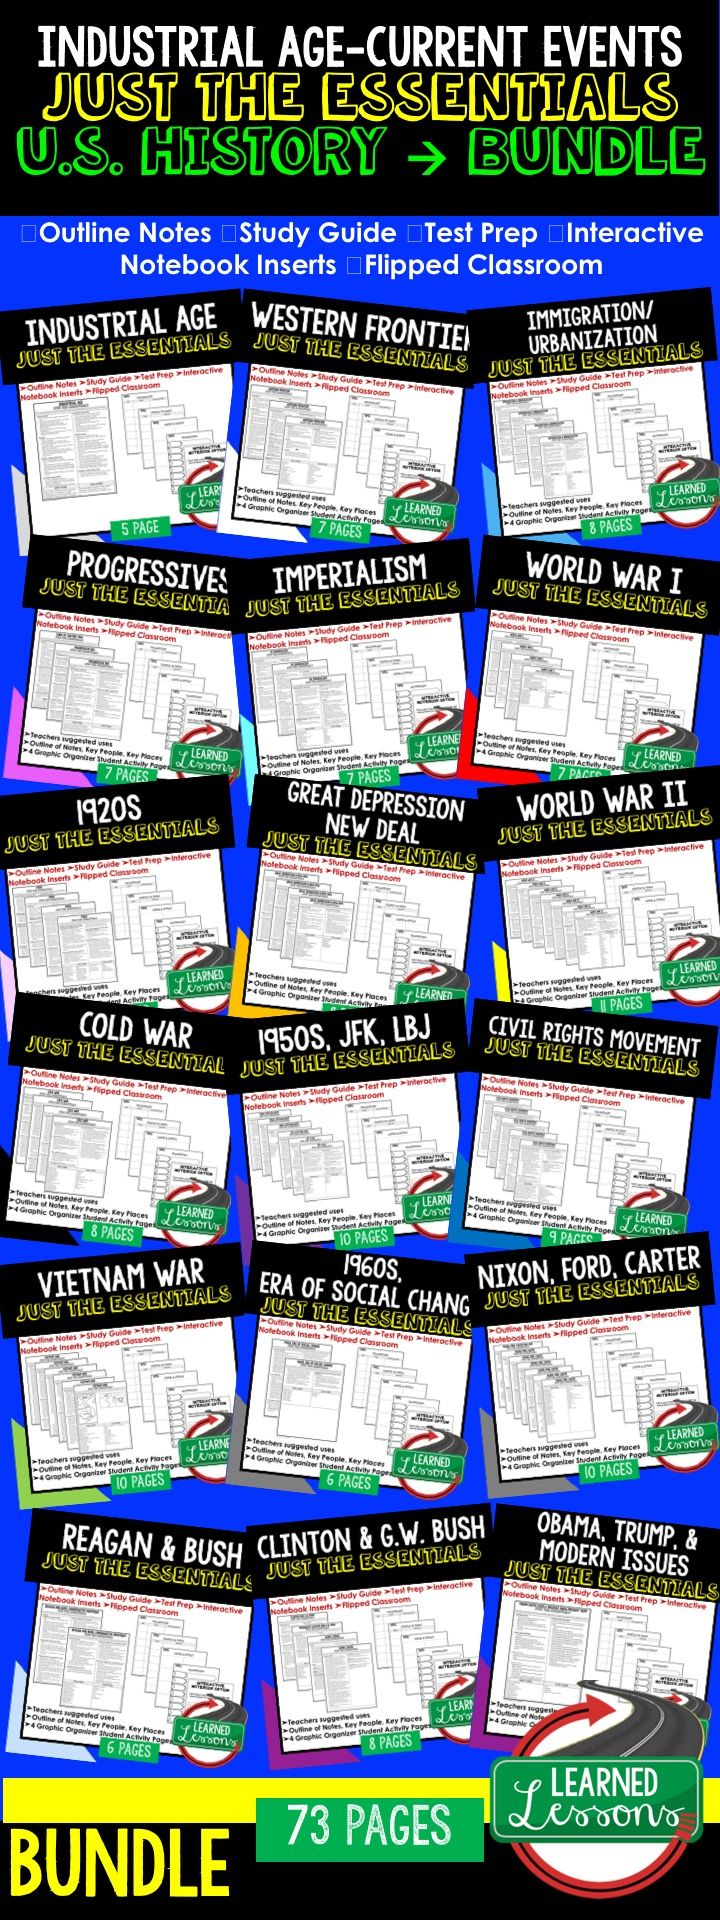 an outline of american history Richard hofstadter, professor of history at columbia university, and wood gray, professor of american history at the george washington university, served as academic consultants d steven endsley of berkeley, california, prepared additional material it has been updated and revised extensively over the years by,.